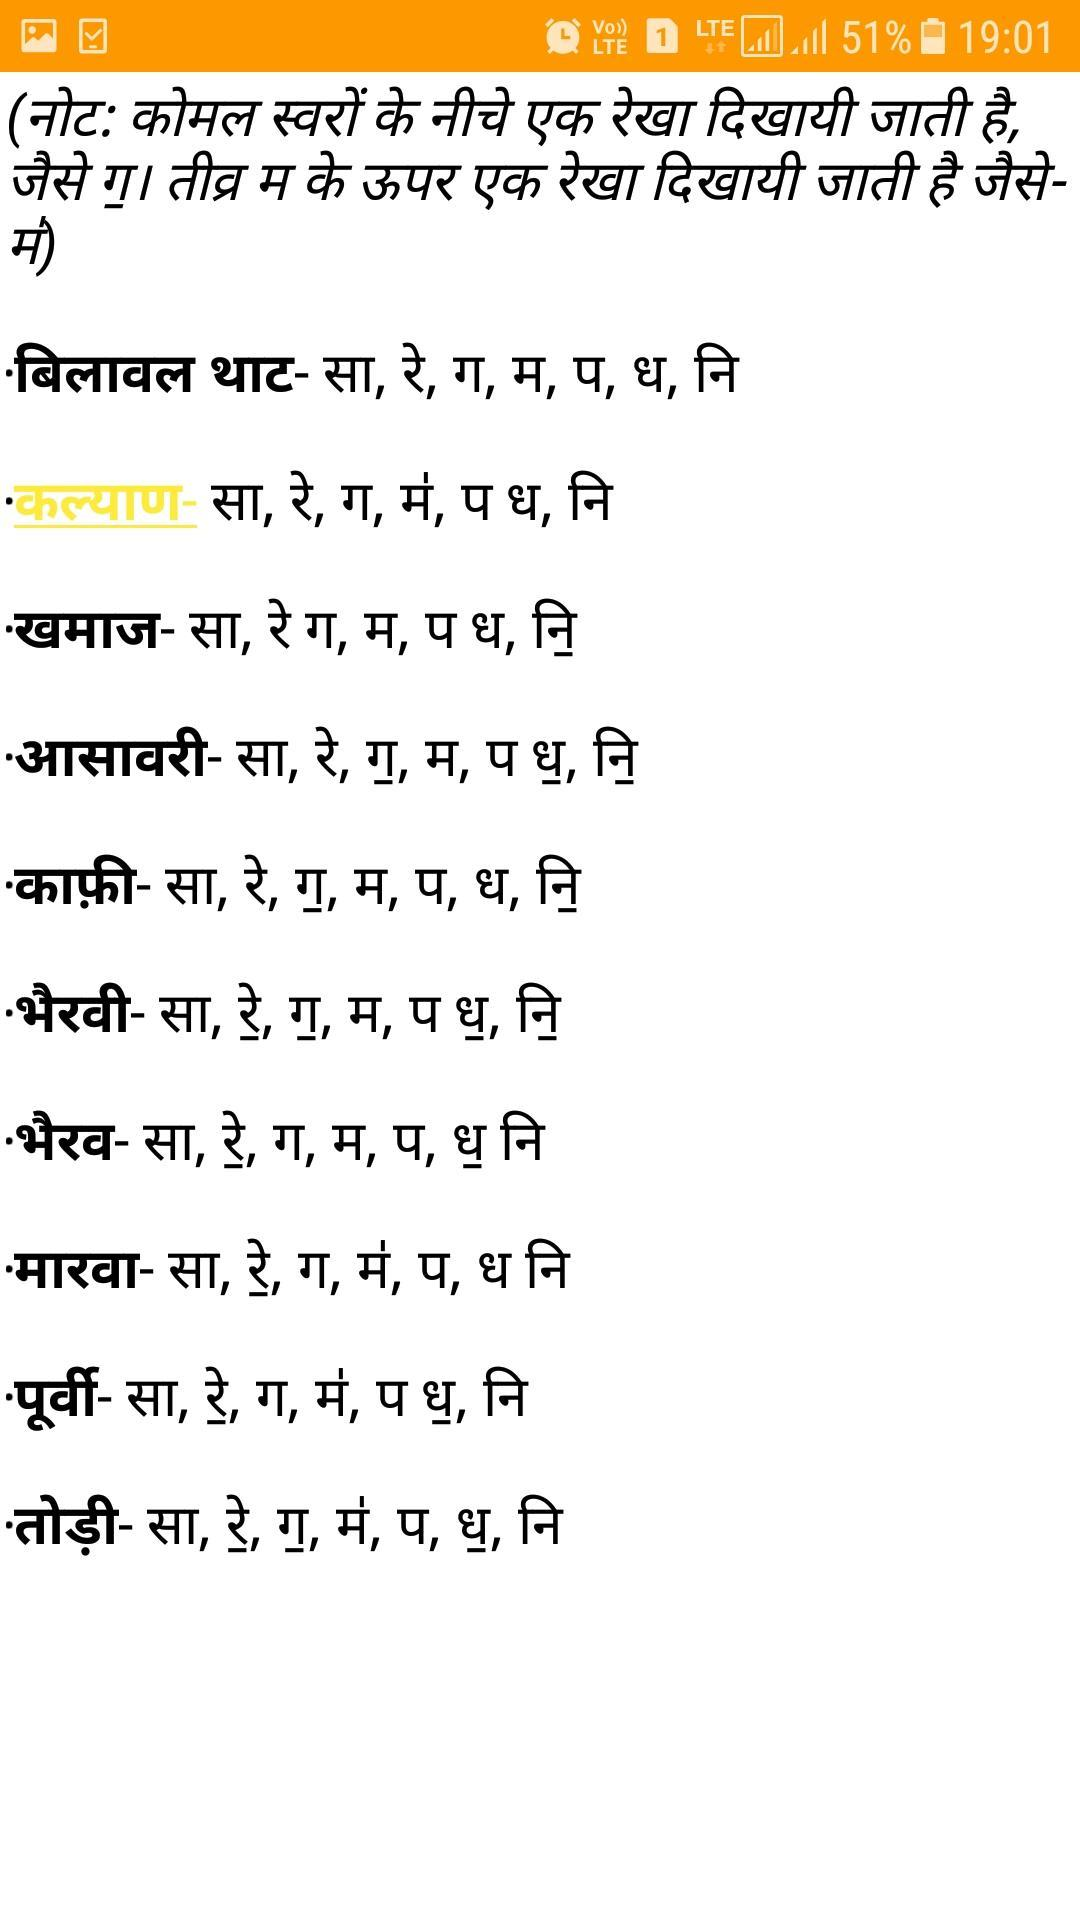 Harmonium book (hindi) 2019 for Android - APK Download